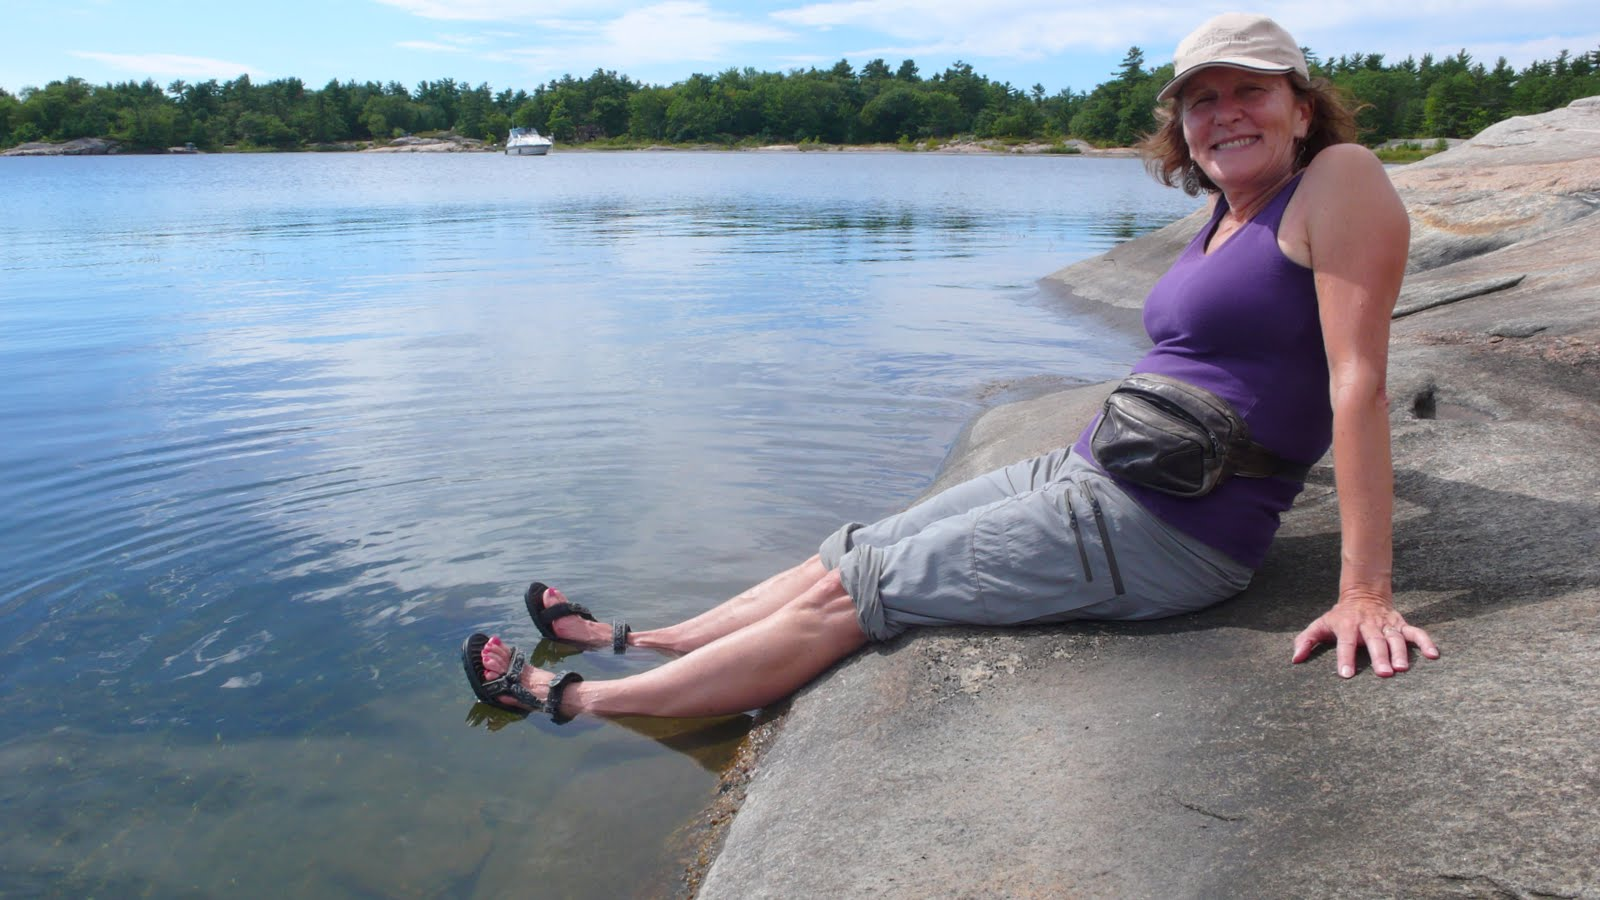 Liz sitting on rocks with feet in water